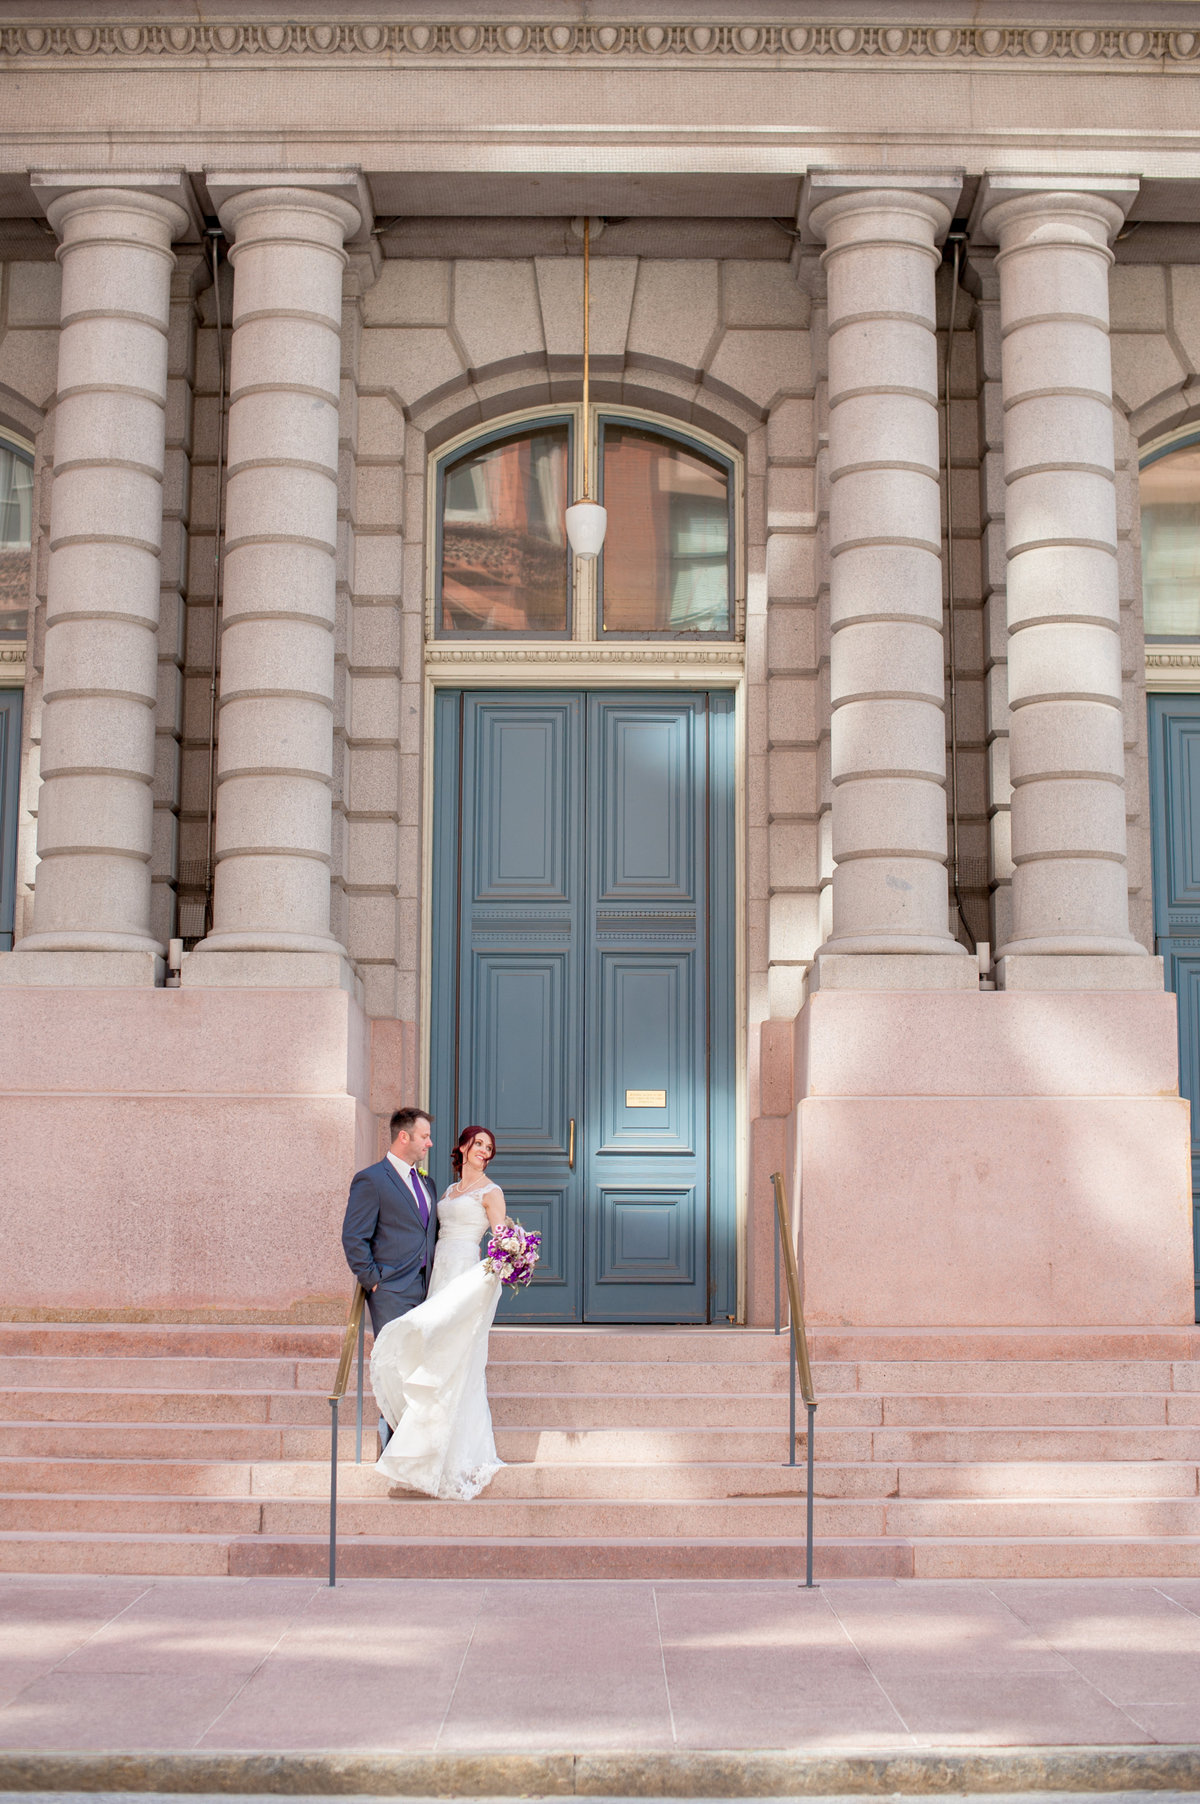 St Louis bride and groom outside on steps